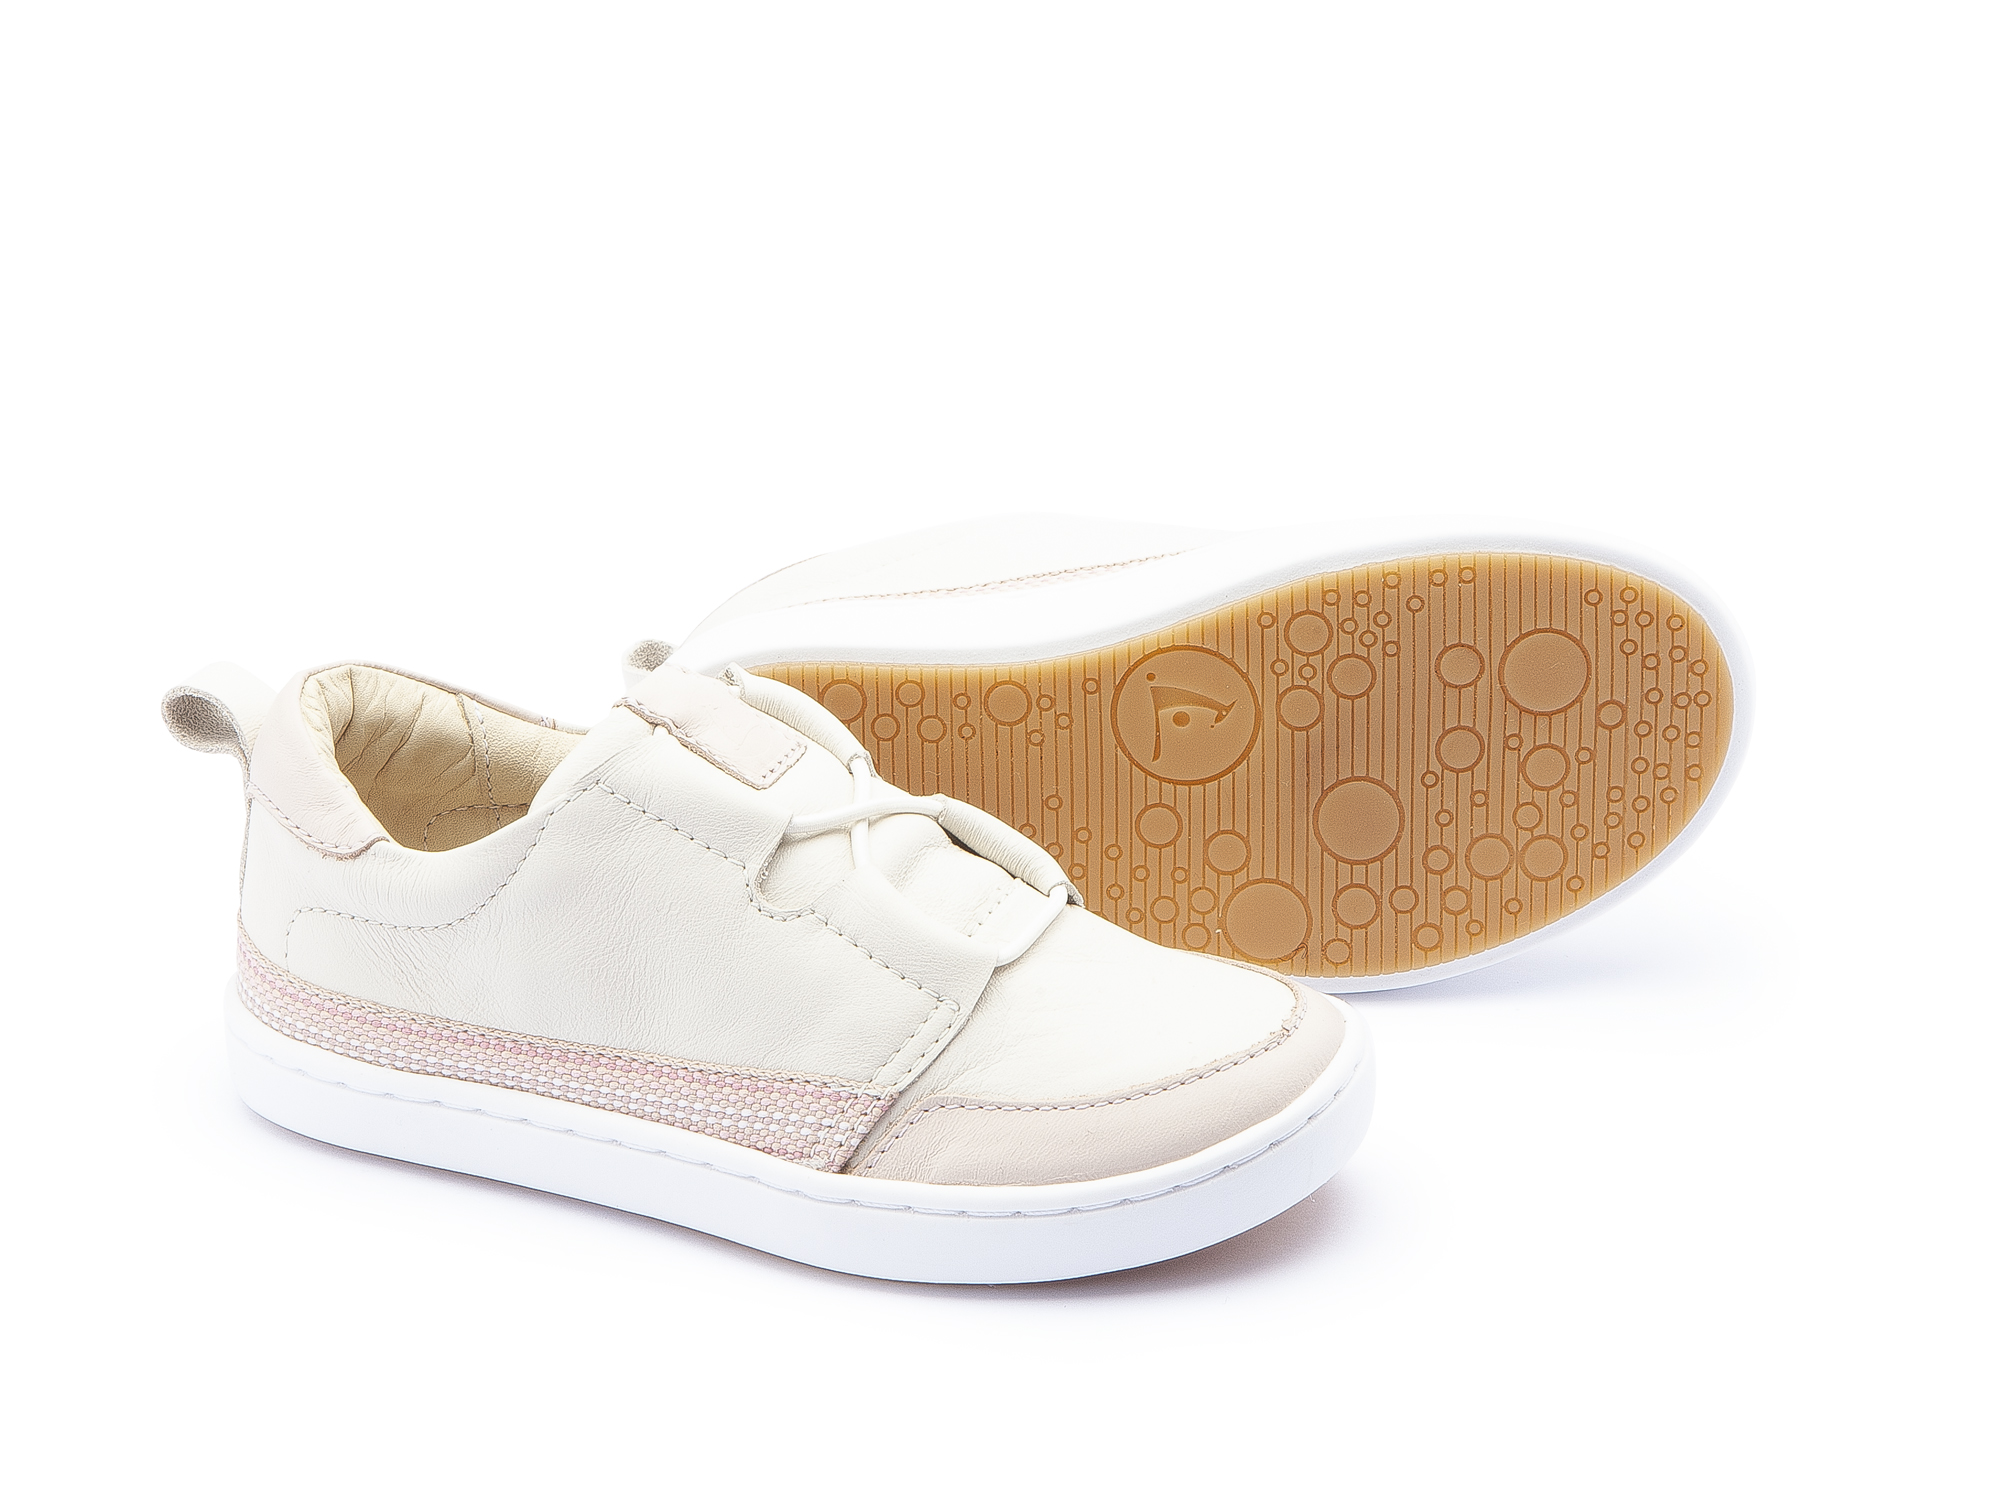 Sneaker Casual Little Ancestral Tapioca/ Cotton Candy Toddler 2 à 4 anos - 2